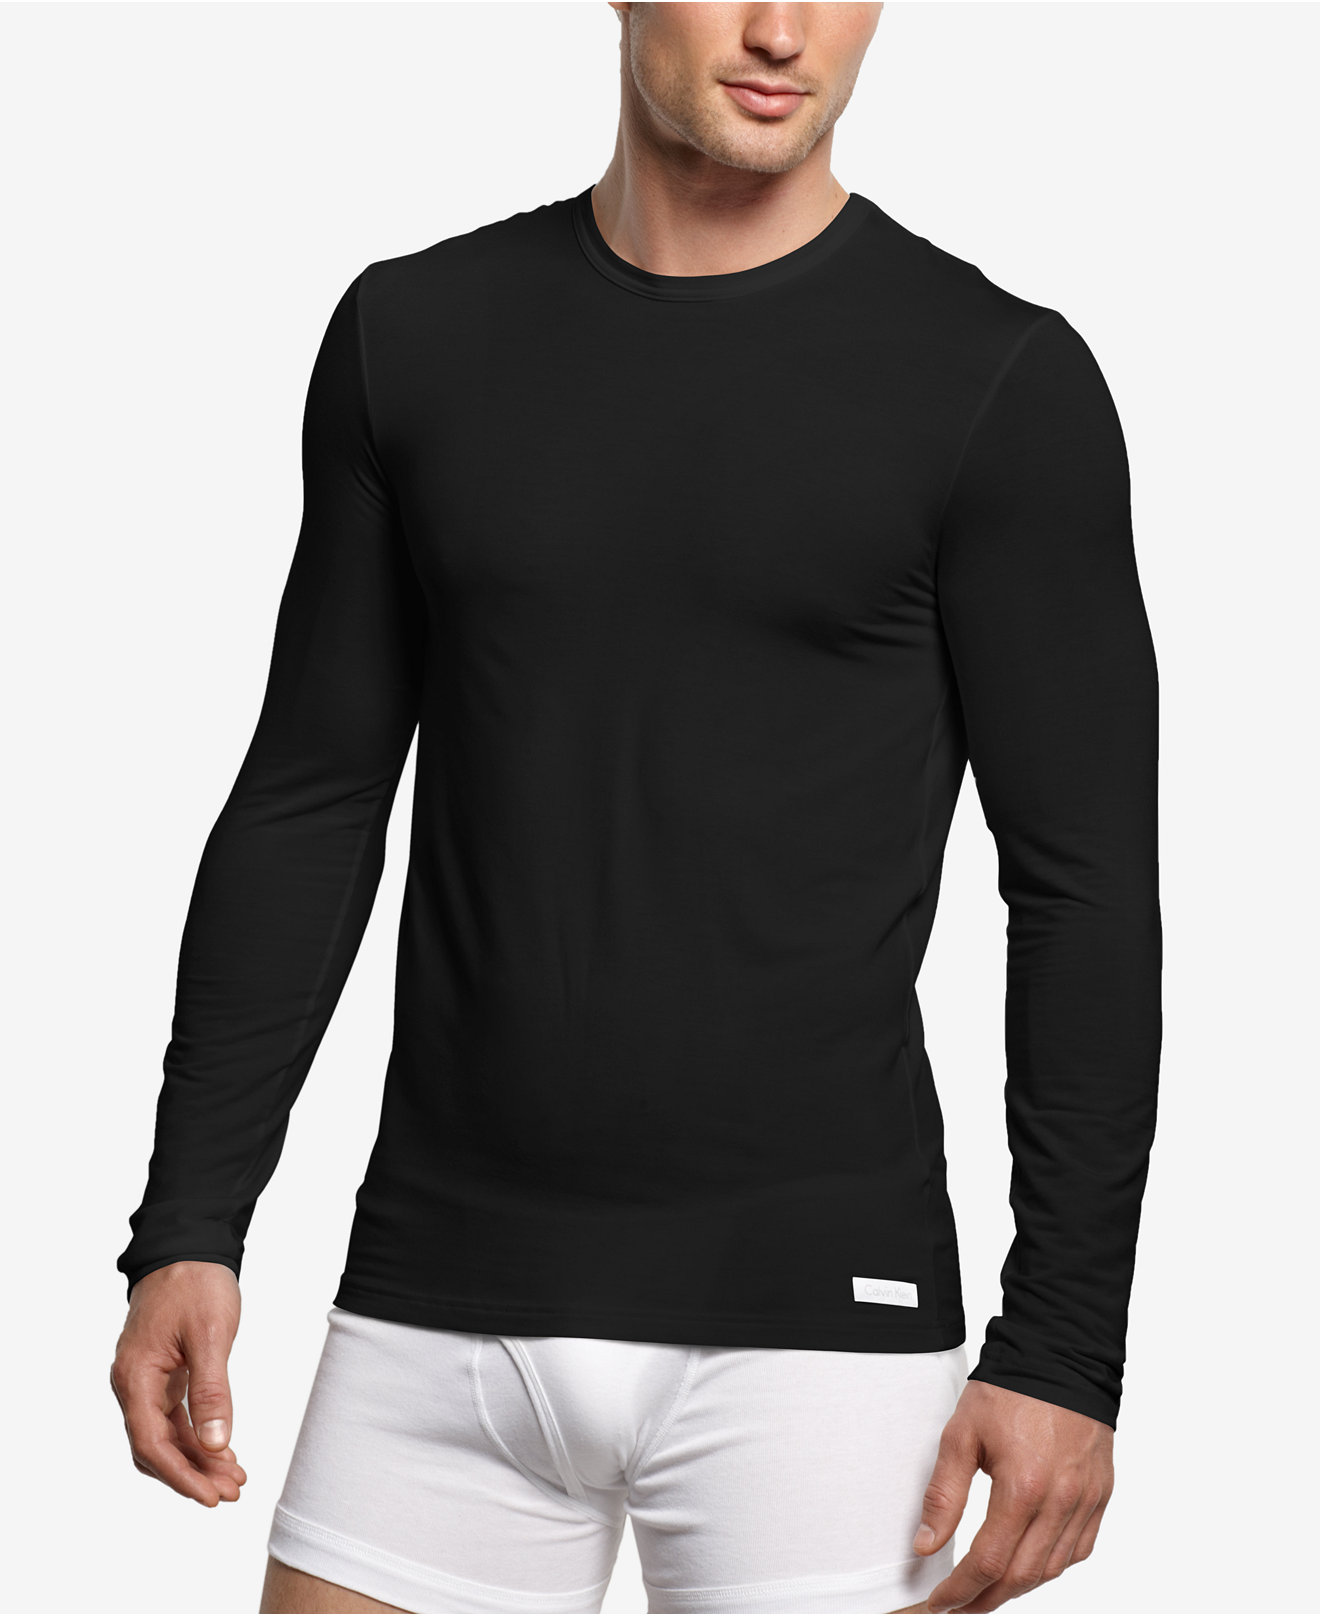 calvin klein micro modal long sleeve crew t shirt u1139. Black Bedroom Furniture Sets. Home Design Ideas